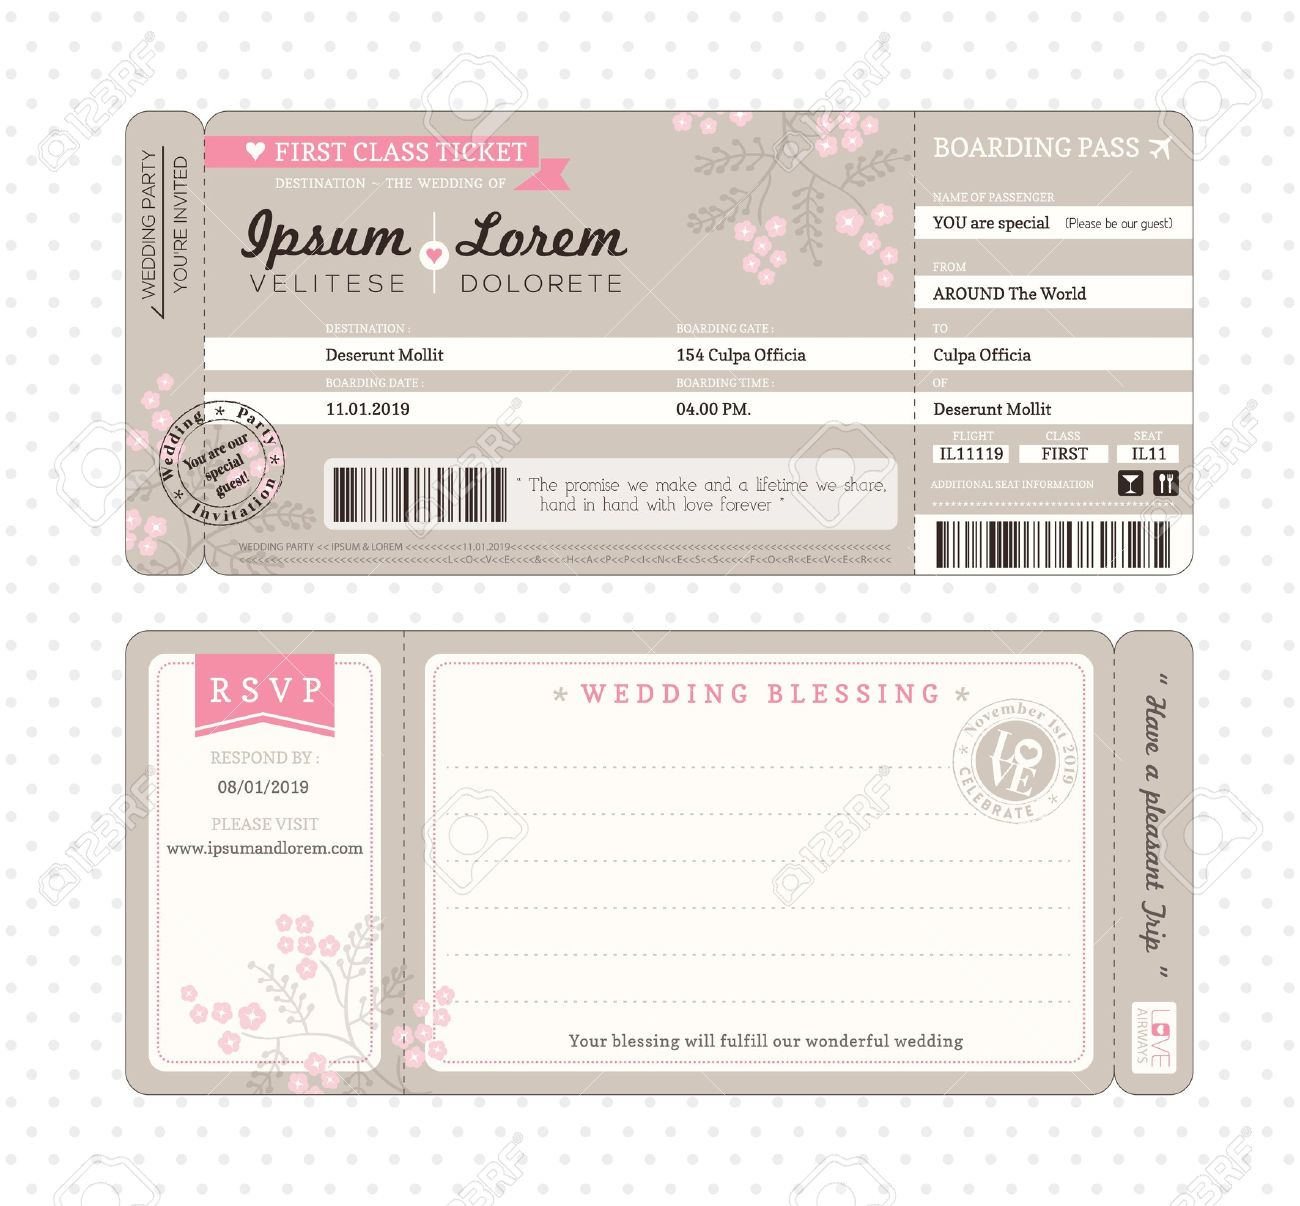 Boarding Pass Ticket Wedding Invitation Template Royalty Free ...